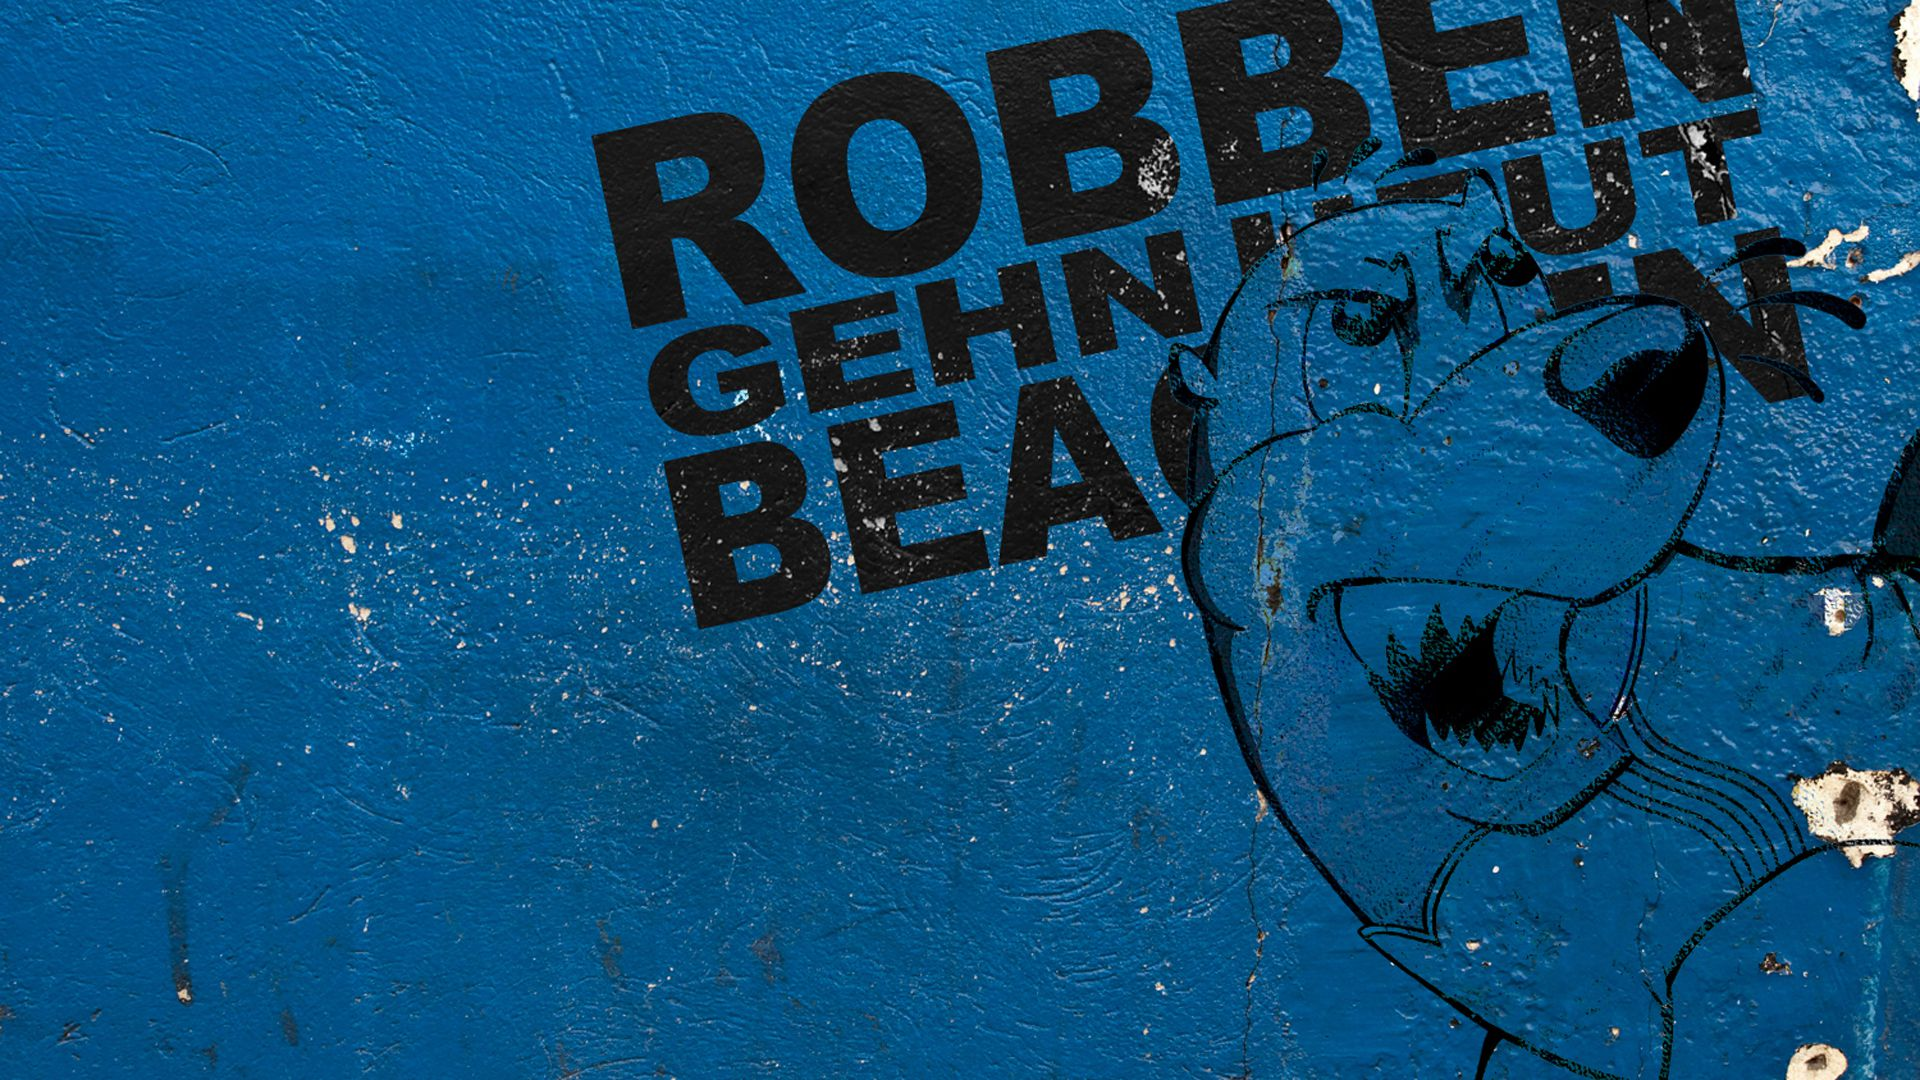 Rostocker Robben Free Wallpaper 4